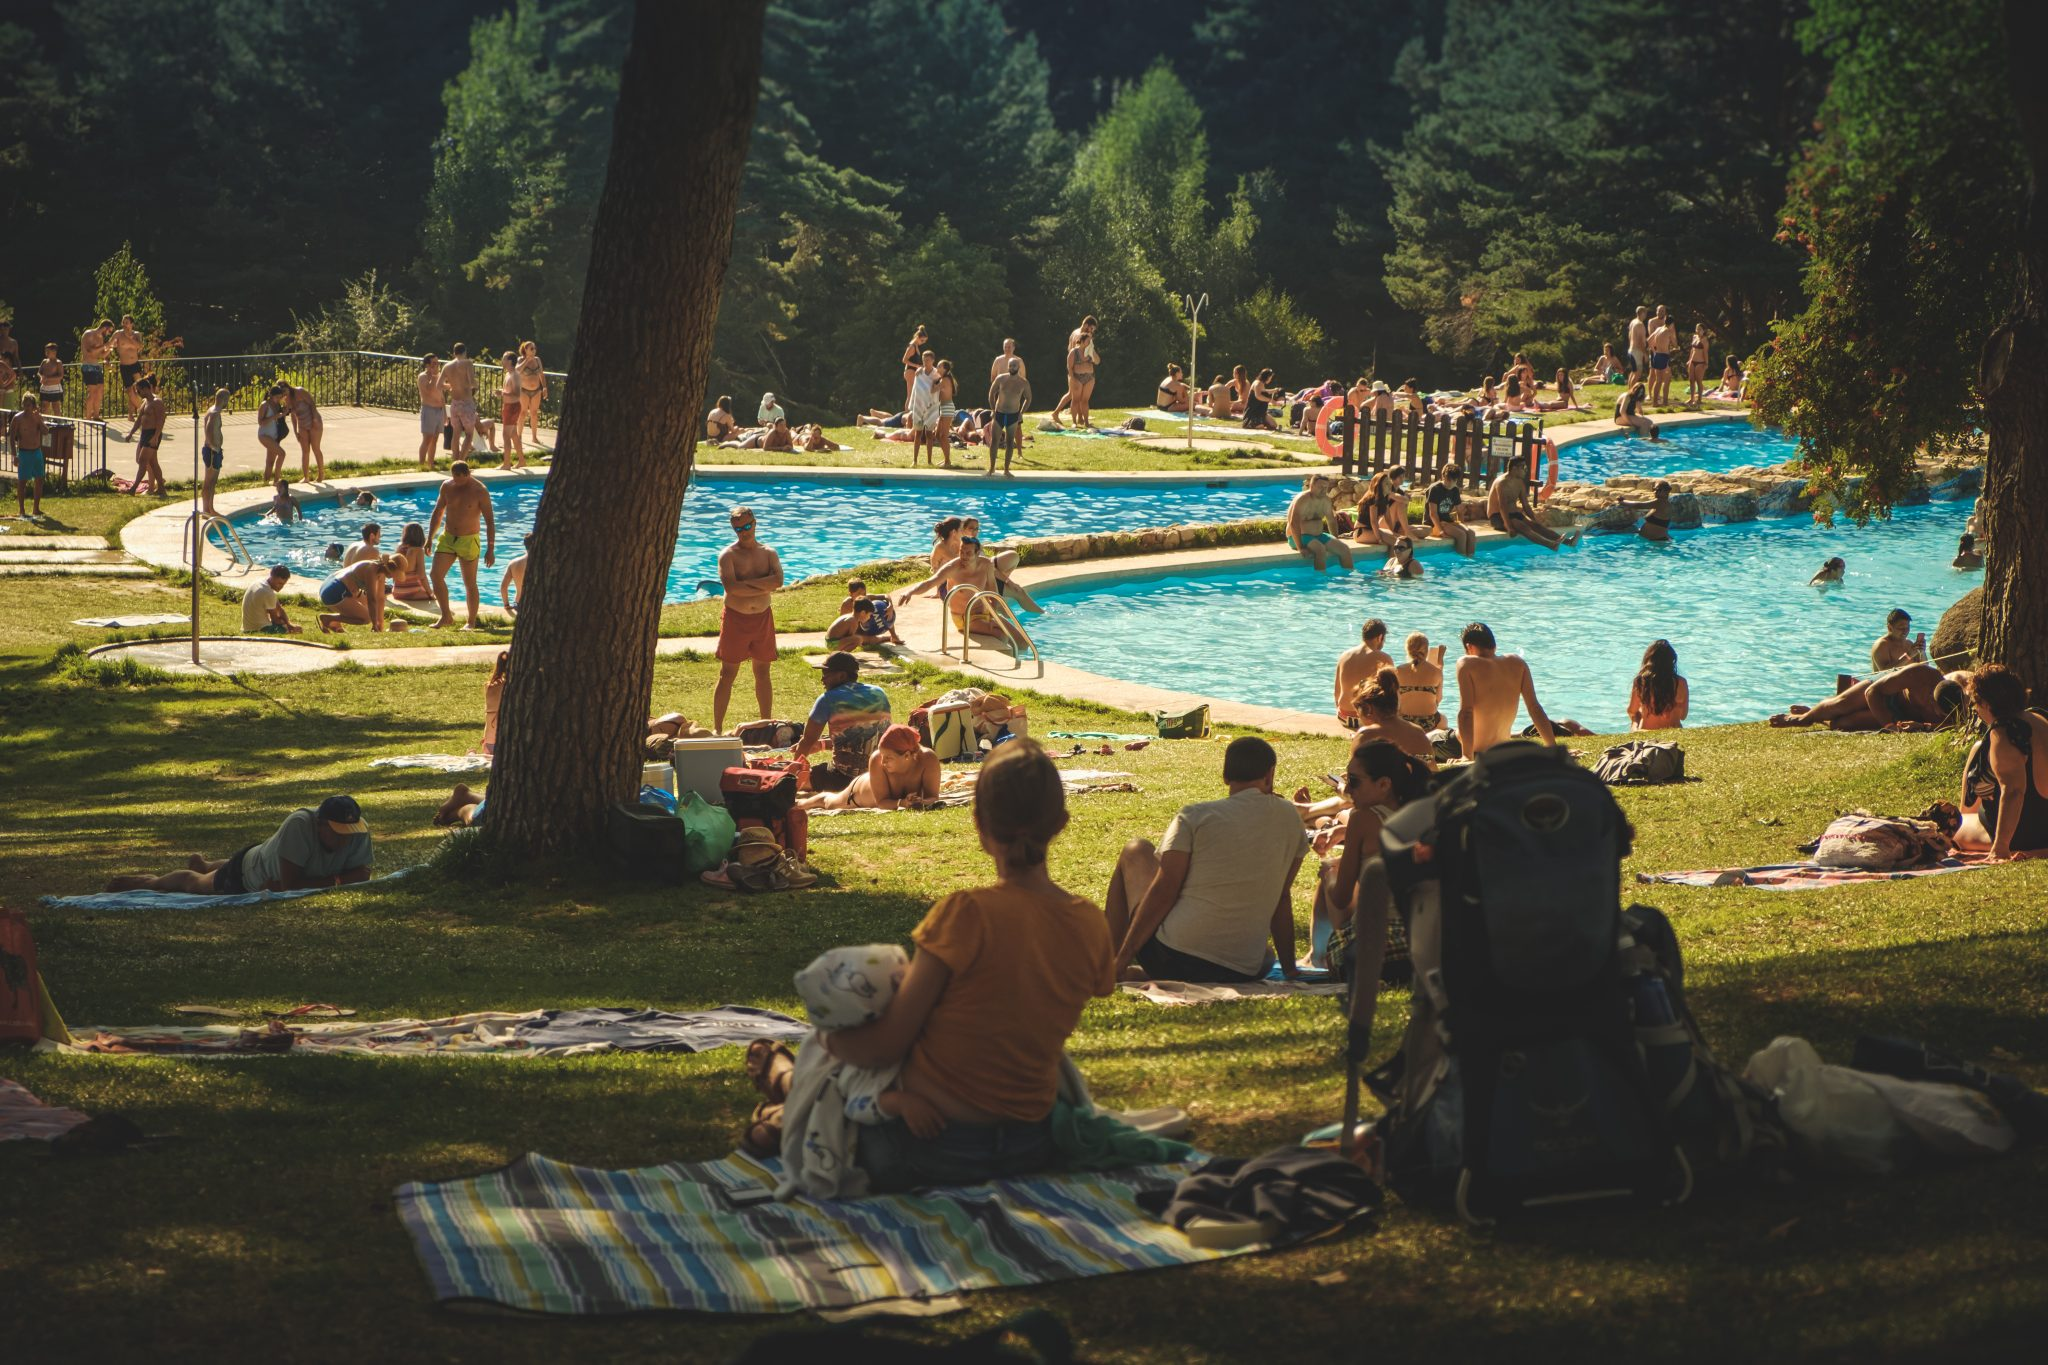 People relaxing on the grass by a natural pool in cercedilla photo by Jo Kassis